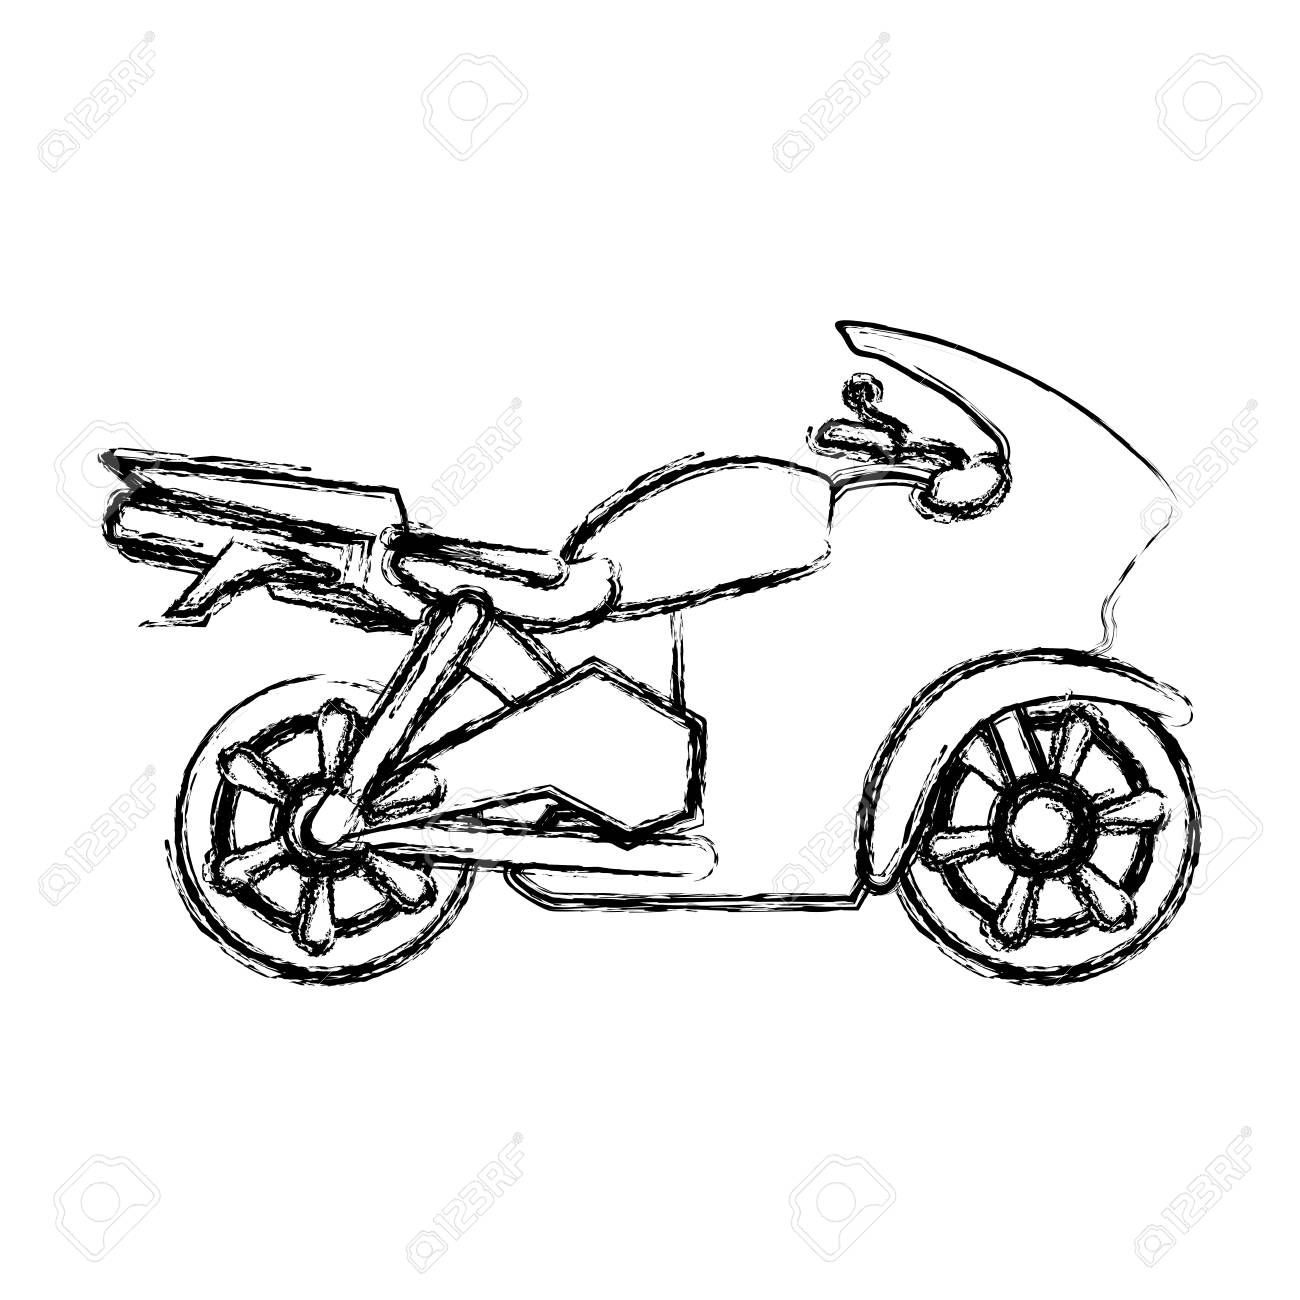 Racing Motorcycle Silhouette Icon Vector Illustration Graphic